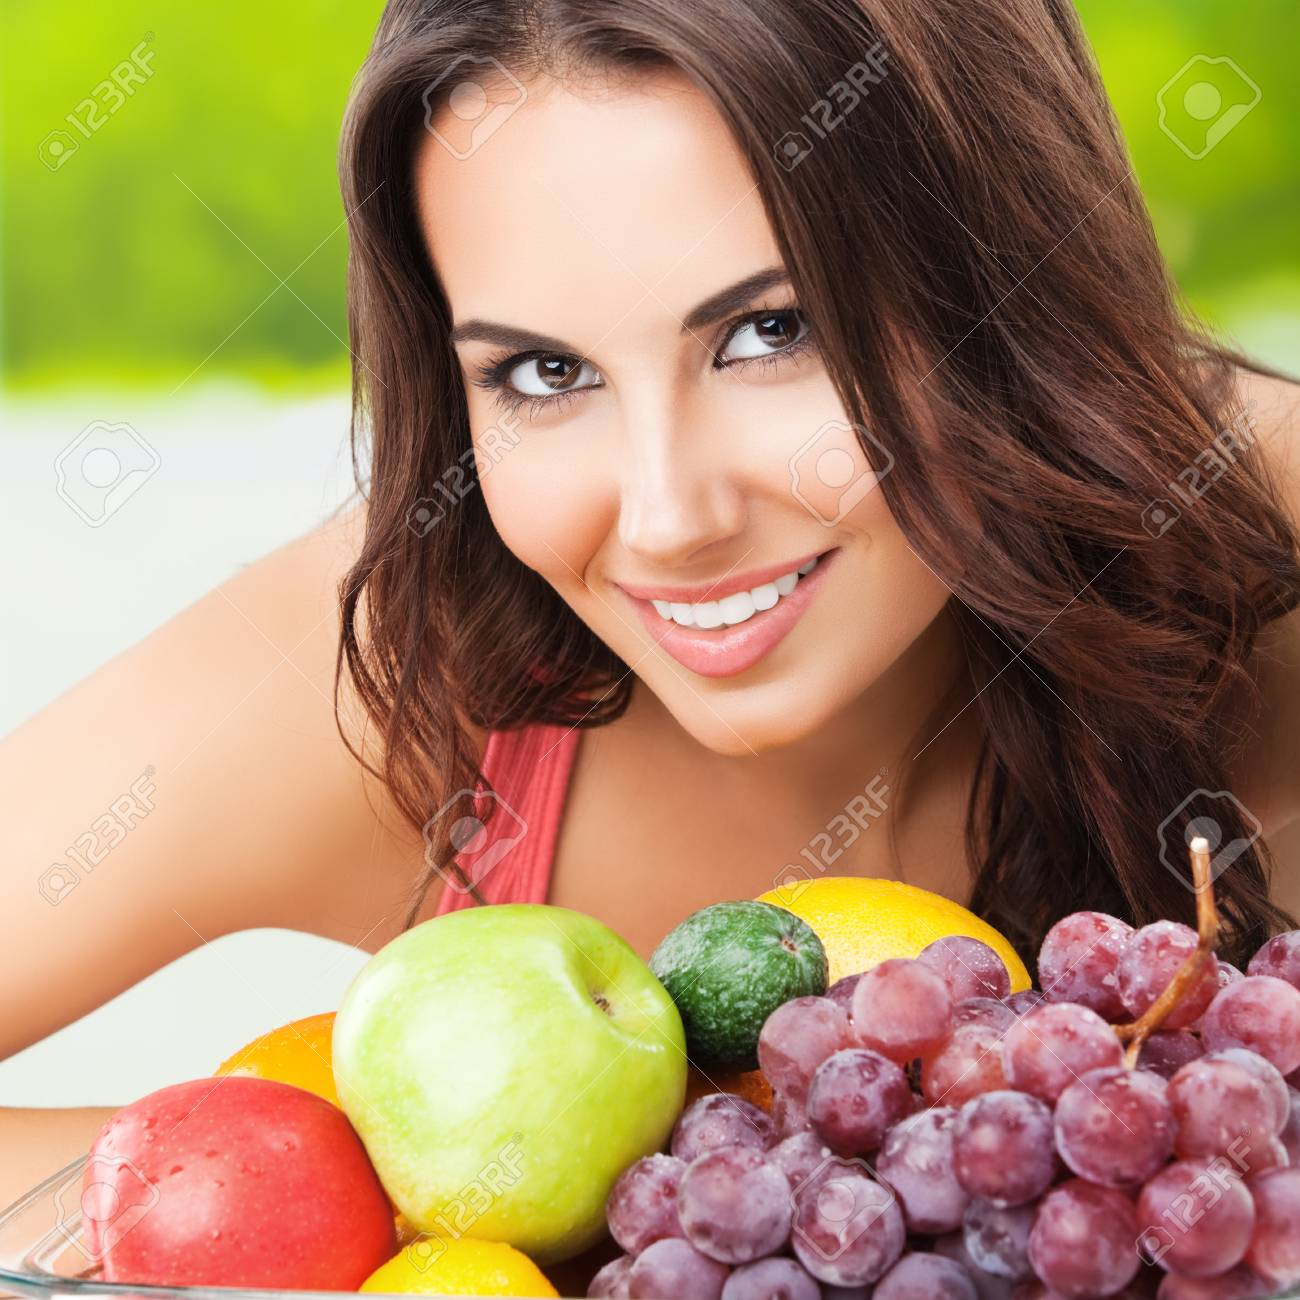 Fruit diet - a guarantee of beauty and health 78